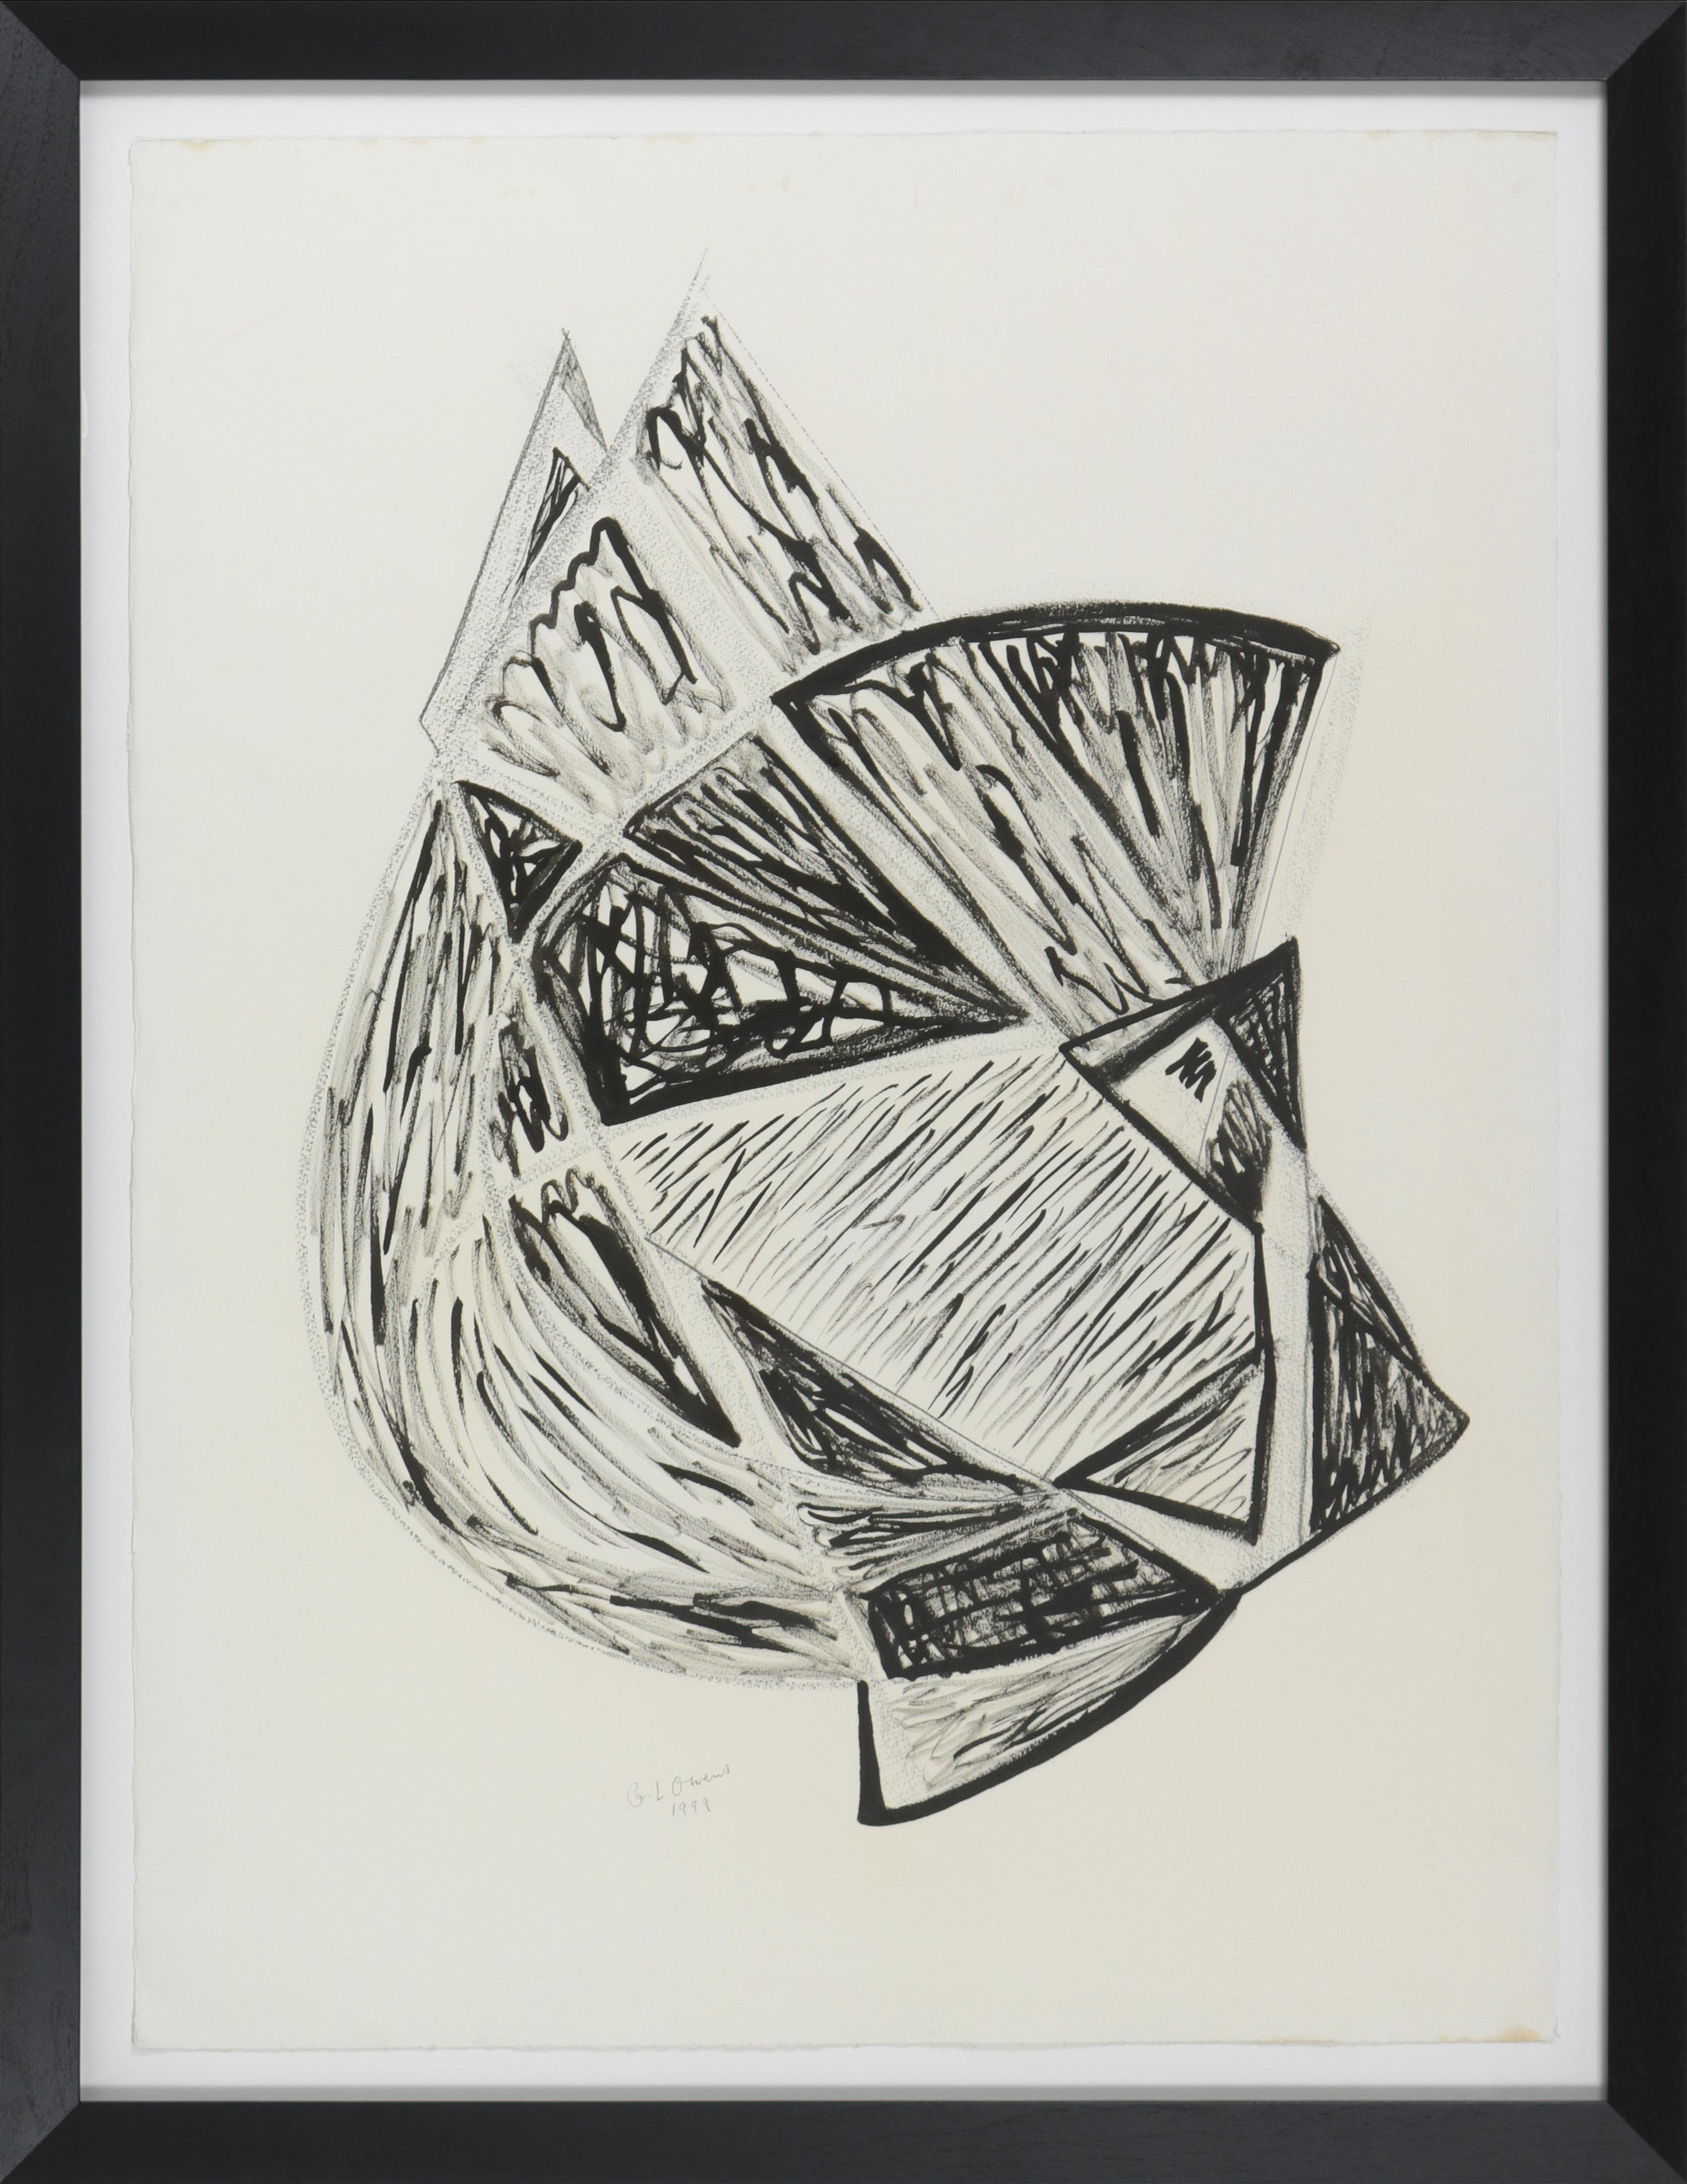 Geometric Monochromatic Abstract Ink drawing, 1998